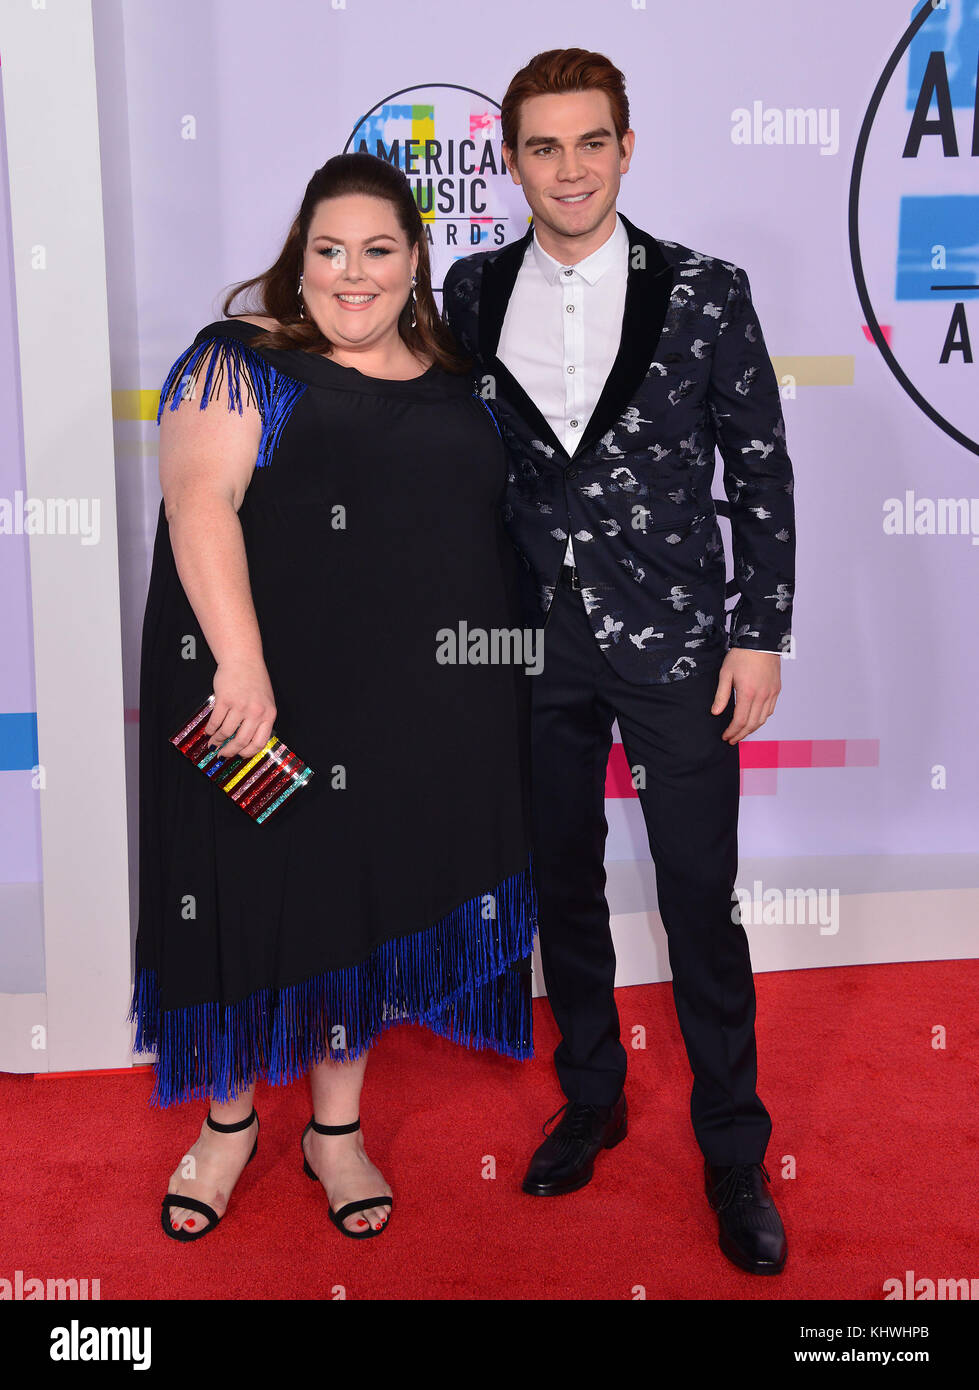 Los Angeles, USA. 19th Nov, 2017. Chrissy Metz, KJ Apa 119 arrives at the 2017 American Music Awards at Microsoft - Stock Image